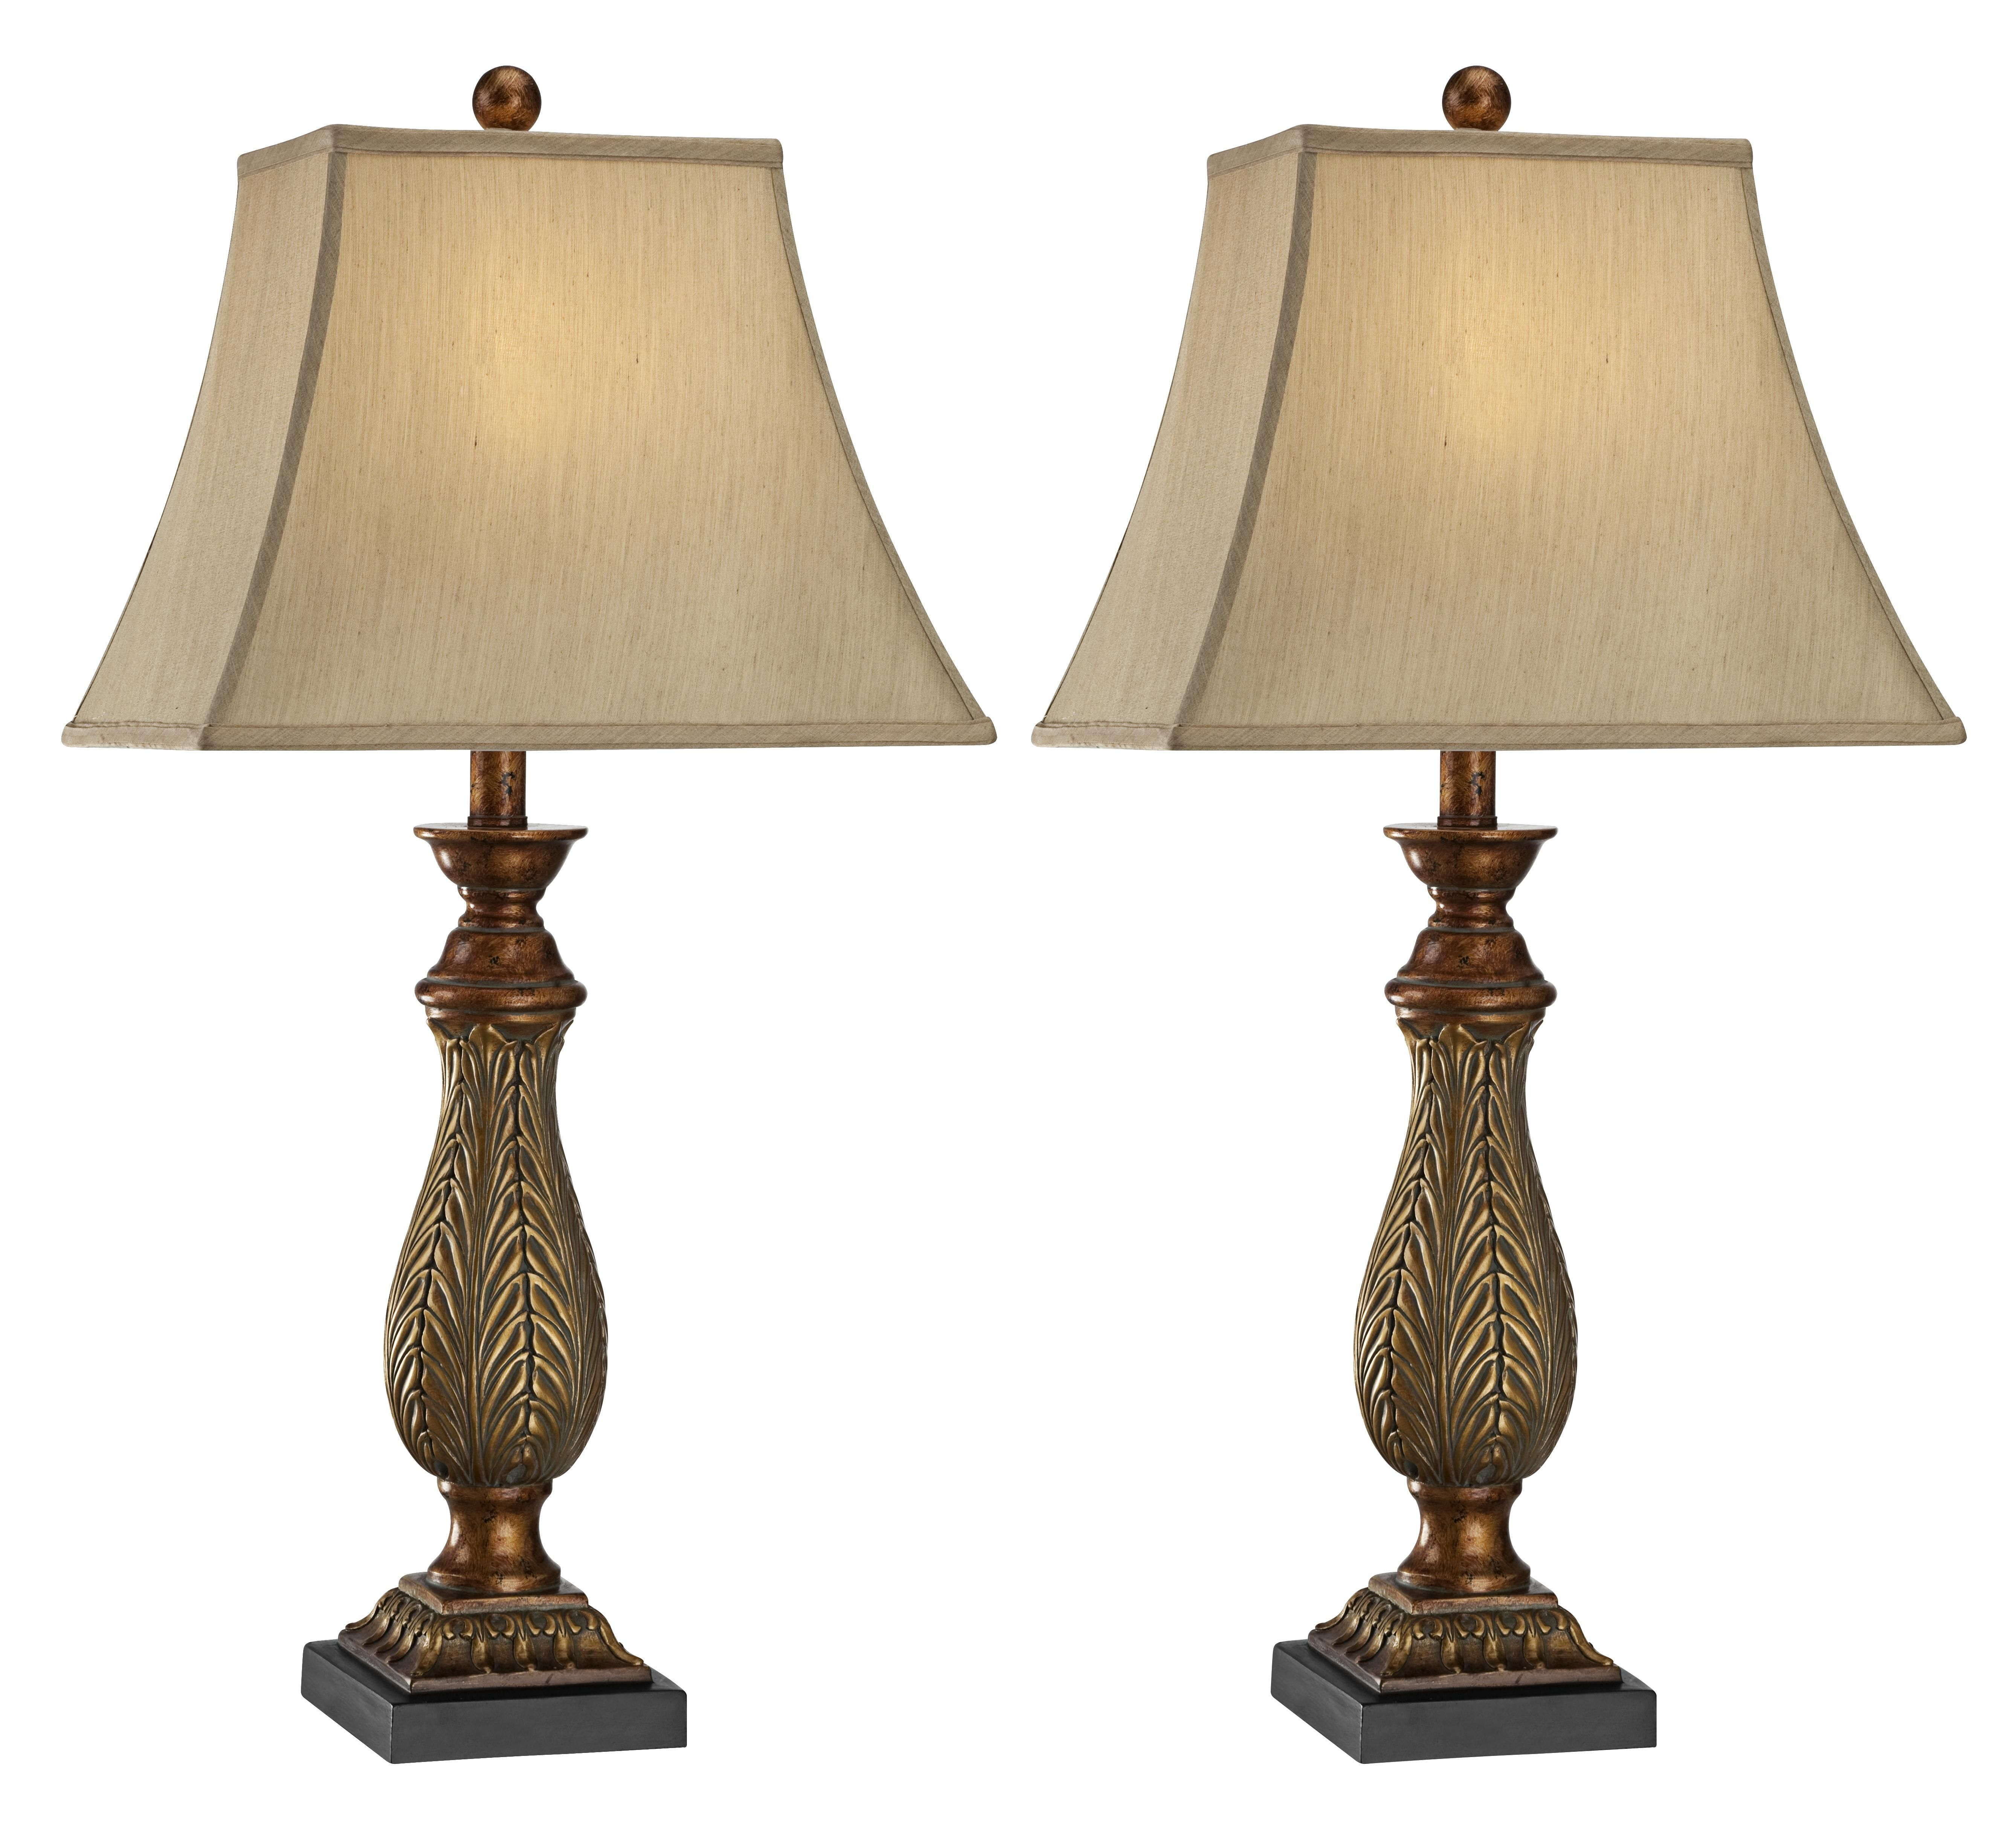 Lights Plus Decor: Two-Tone Gold Traditional Table Lamps Set Of 2